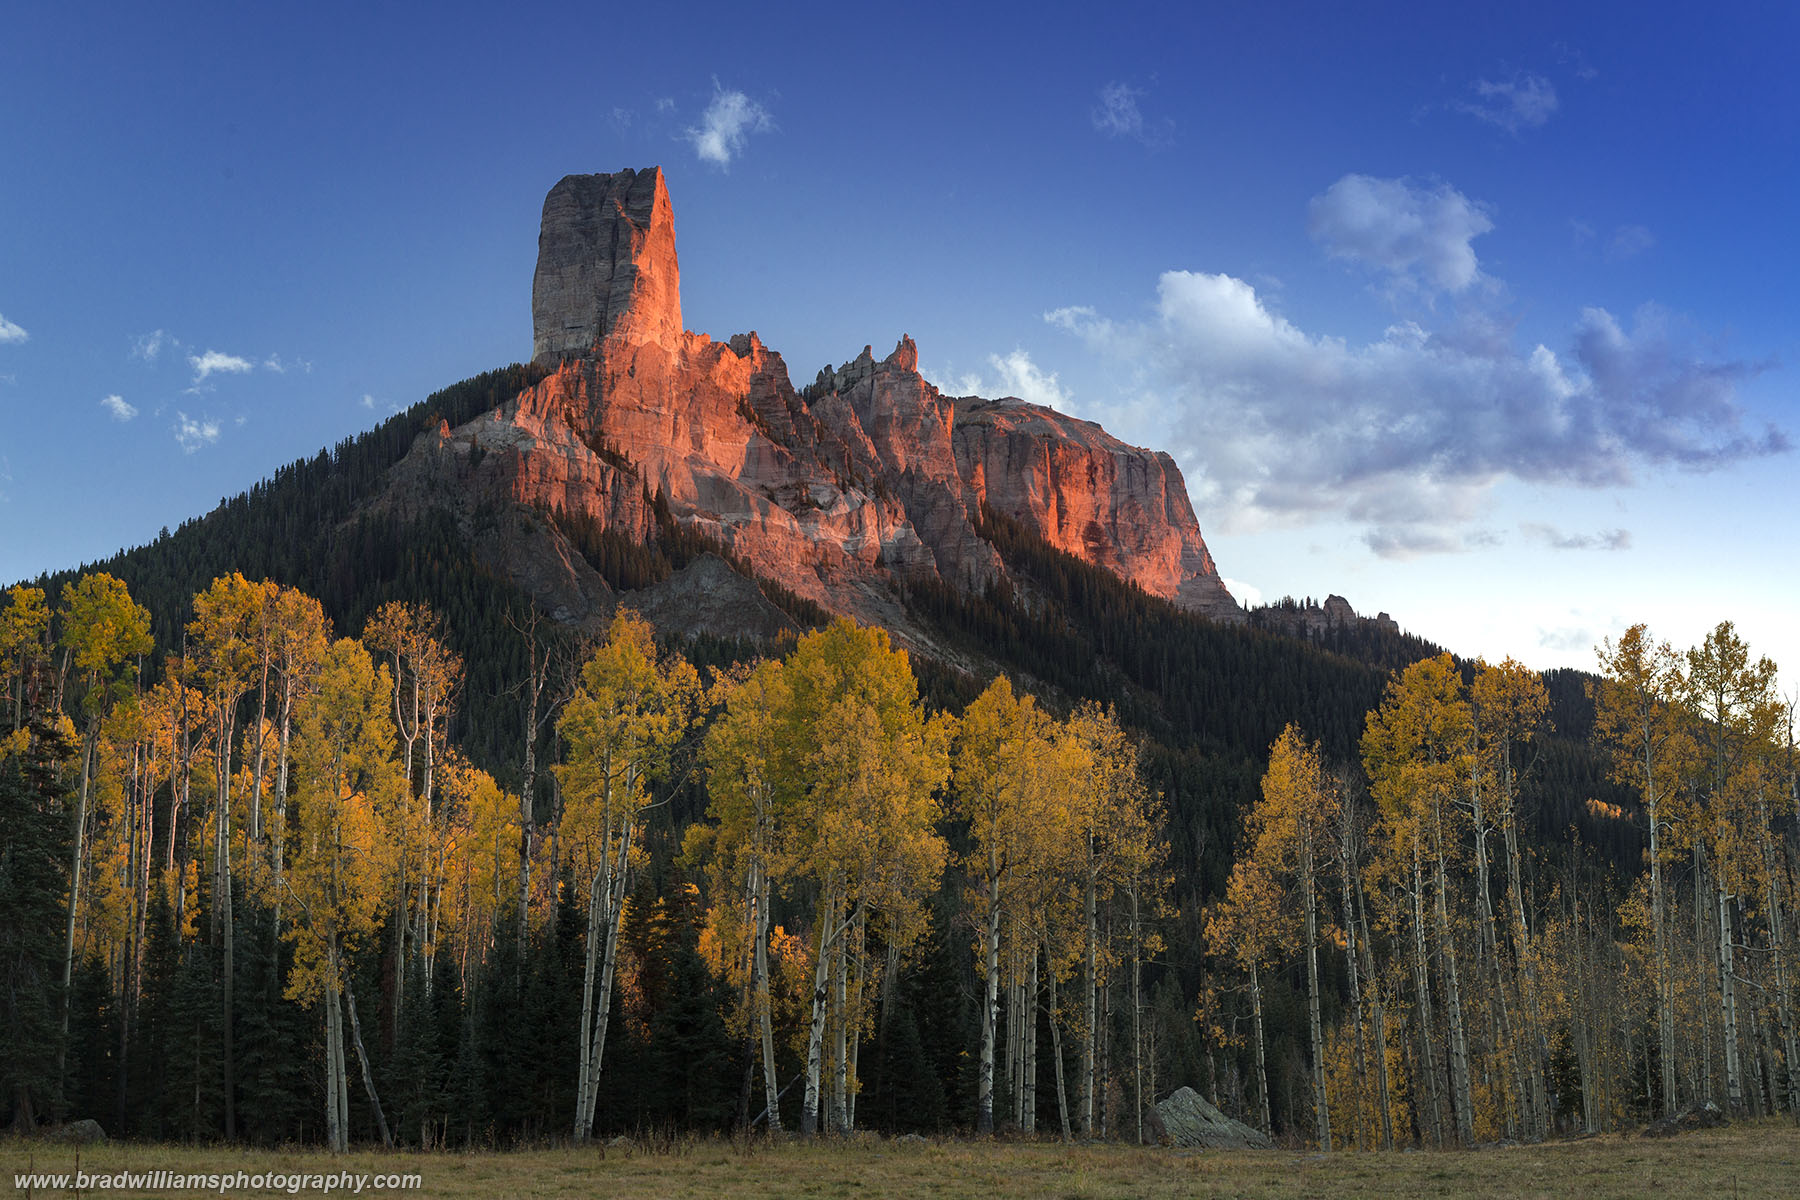 Its a great fall afternoon and suns warm glow is reflecting on the iconic Chimney Rock on the Owl Creek Pass in the Uncompahgre...